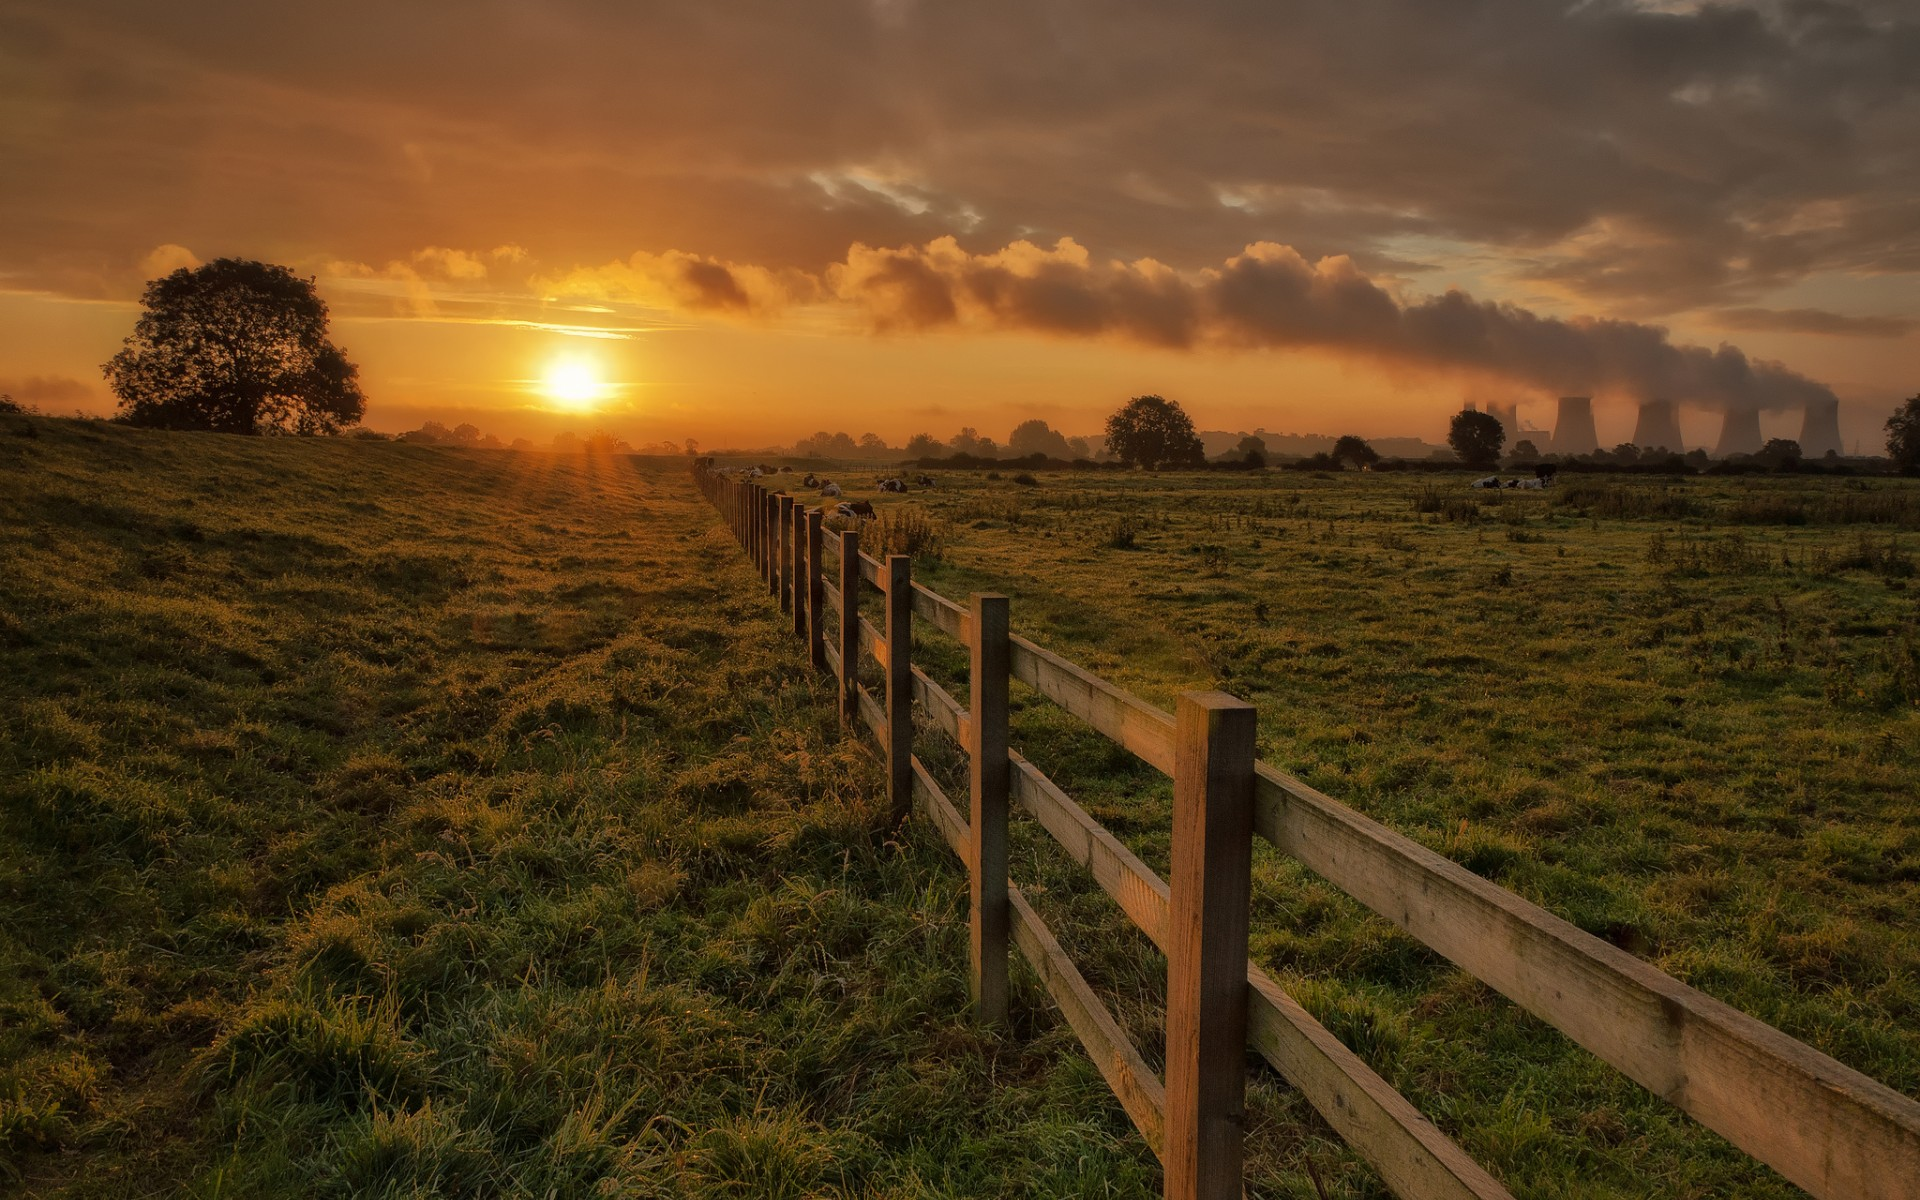 corral Fence Fencing Cows Grass Trees Sun Evening Sunset 1920x1200